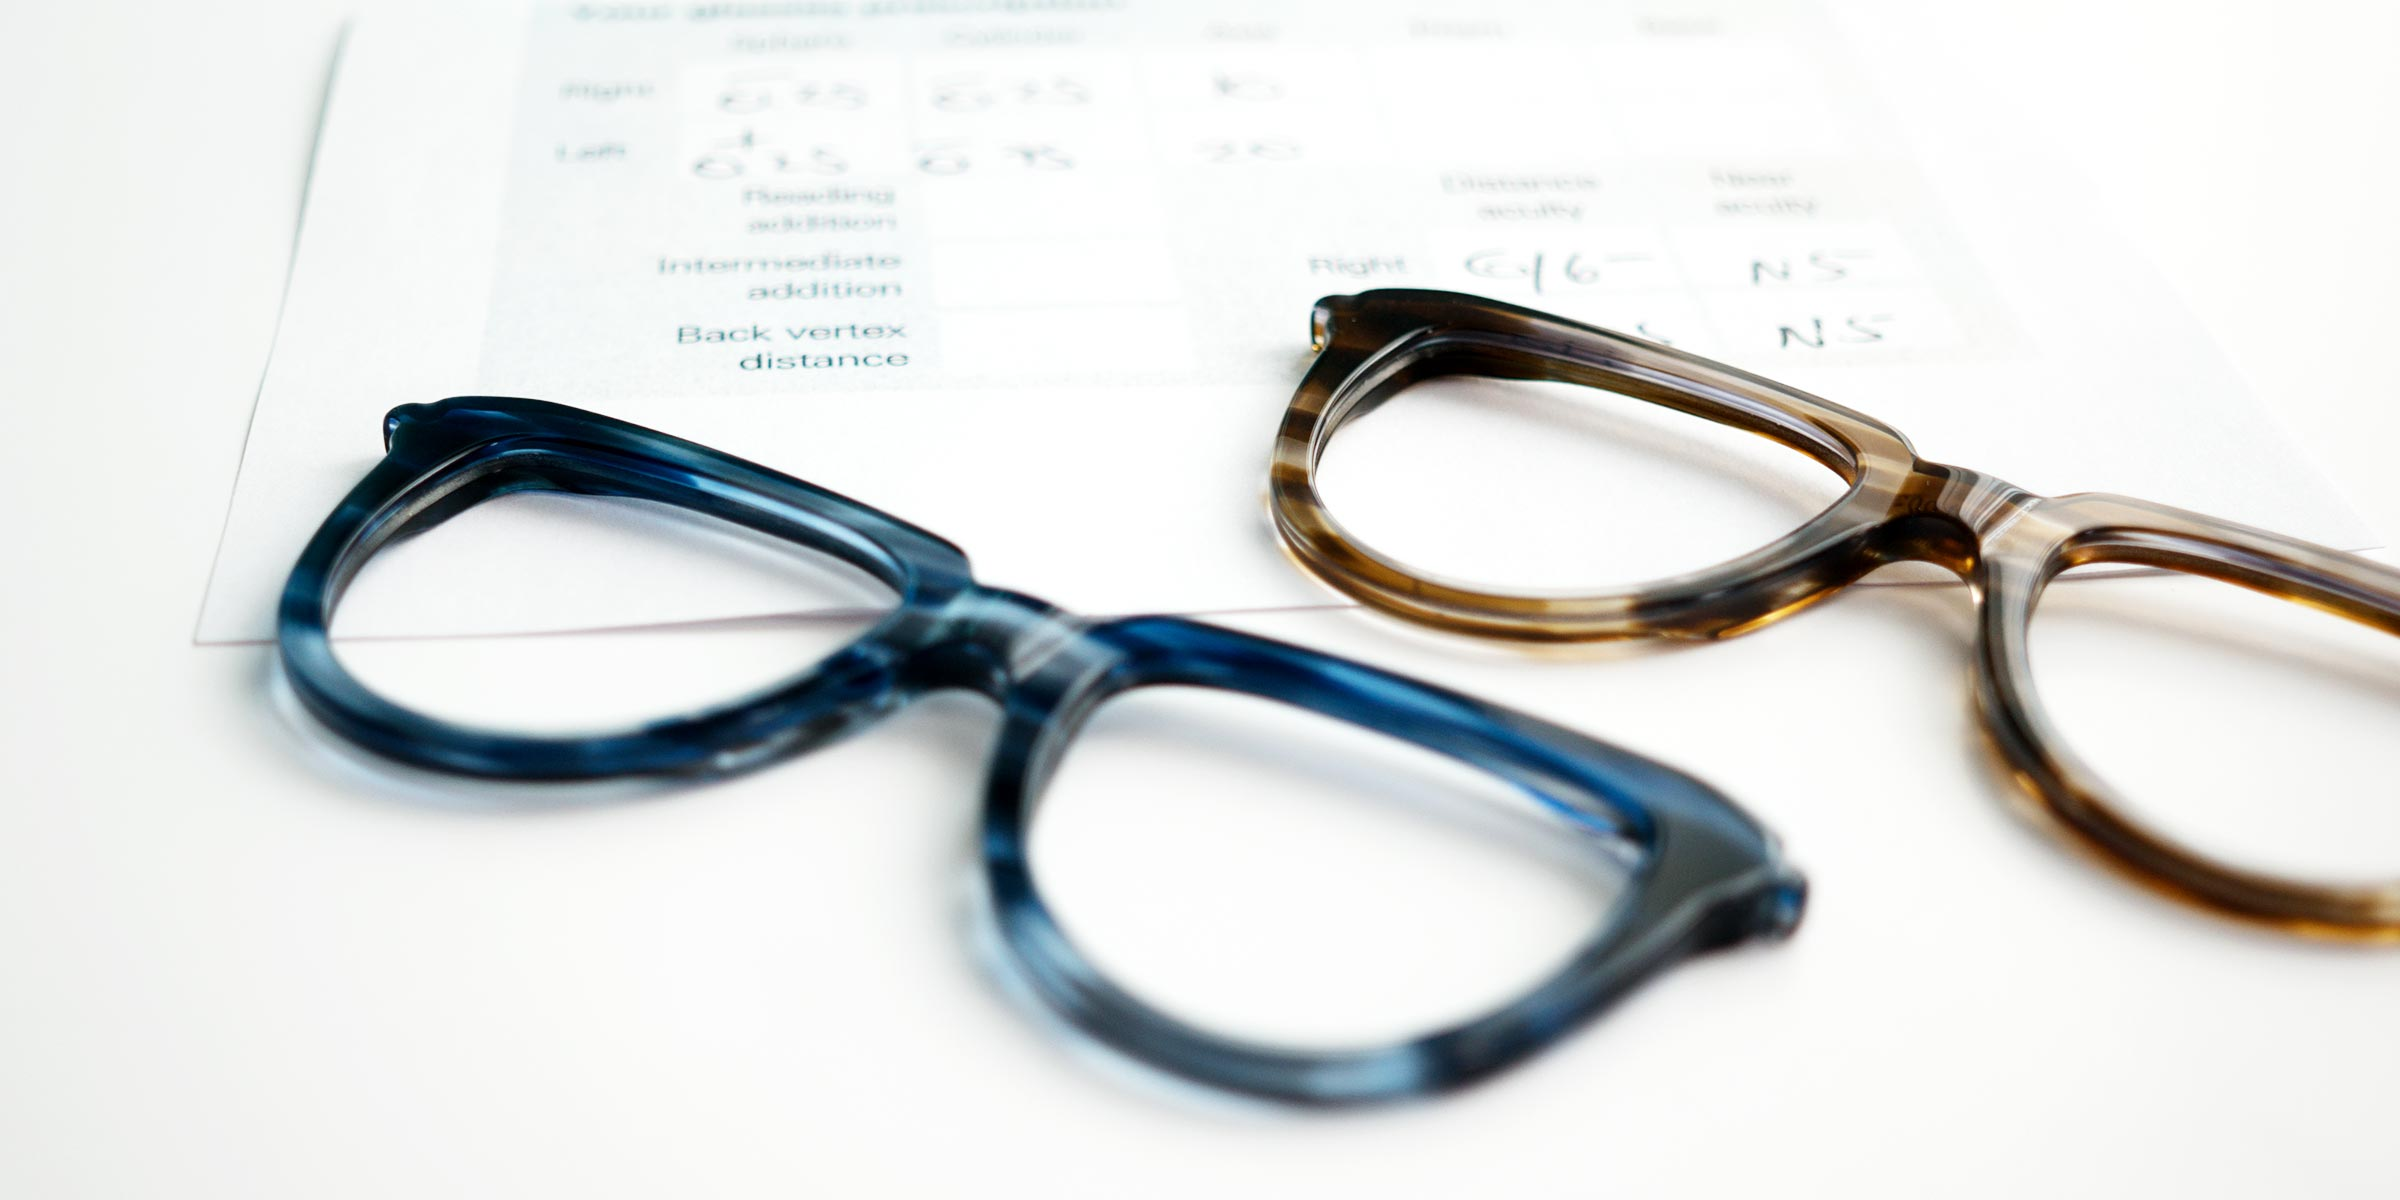 Glasses frames lying next to a prescription form